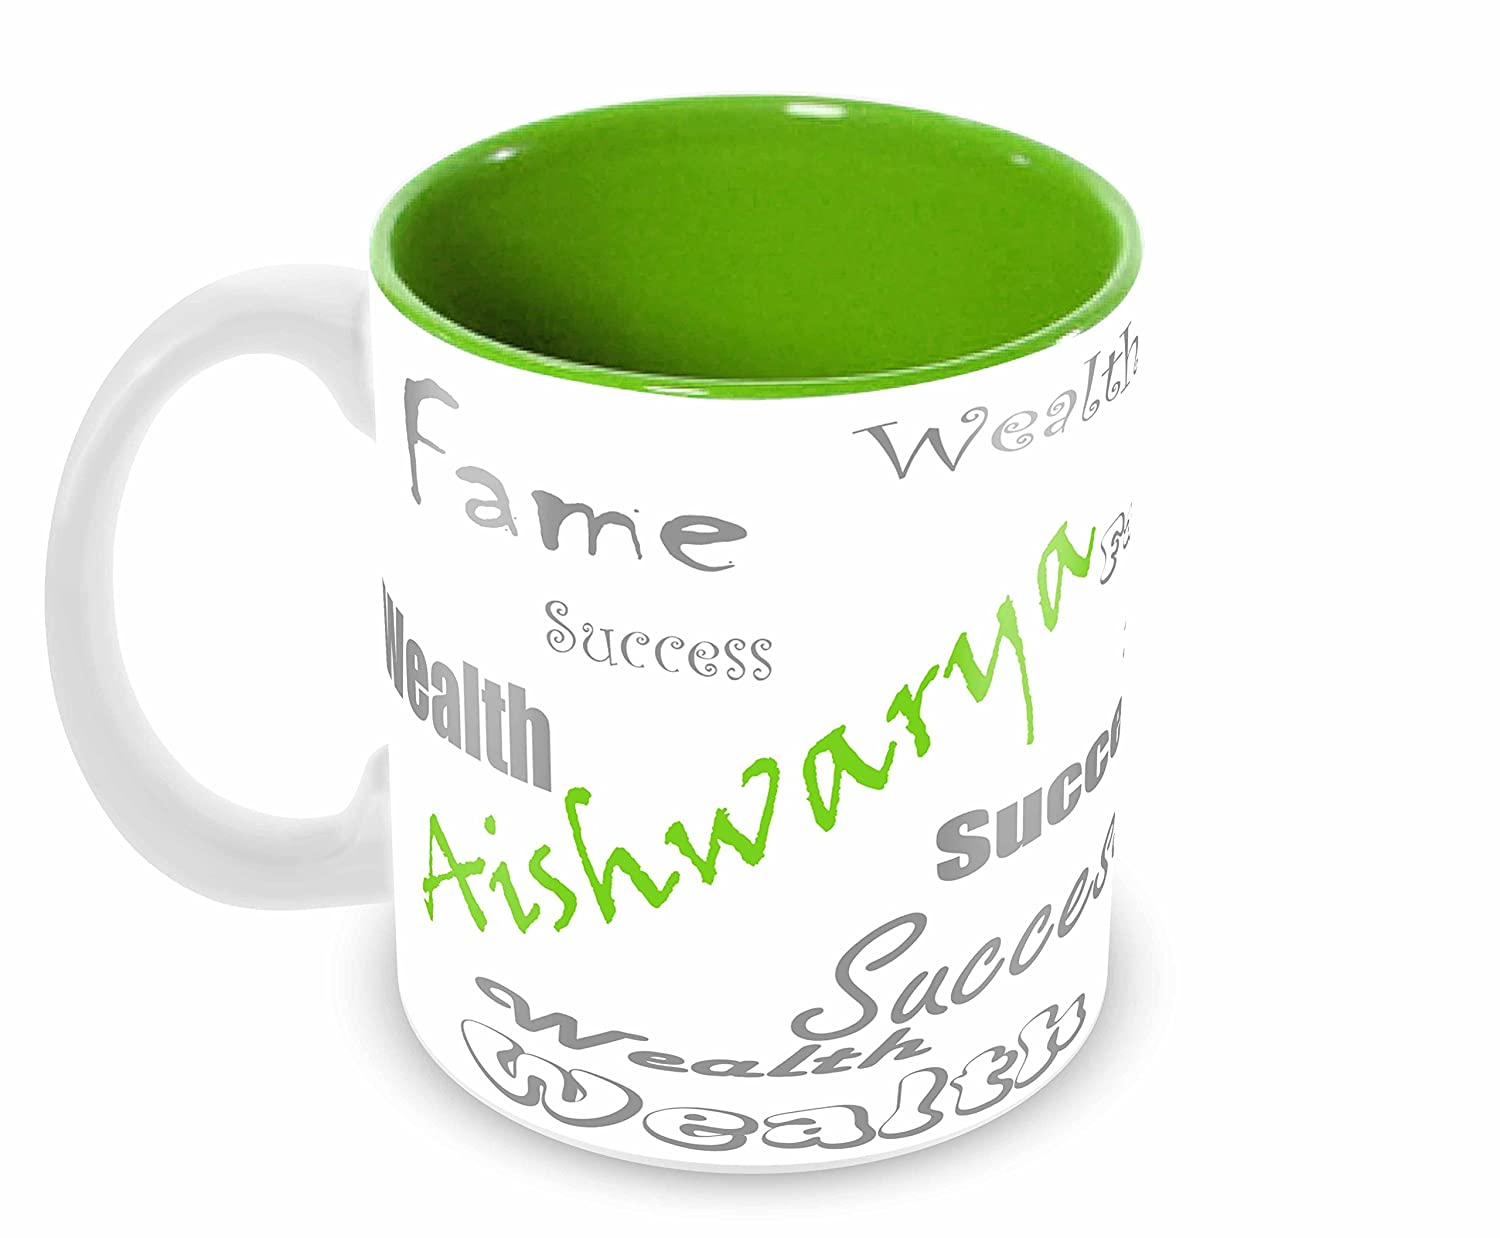 Buy Tuelip Stylish Customize Name Aishwarya With Meaningful Printed Ceramic Tea And Coffee Ceramic Mug 350ml Green Online At Low Prices In India Amazon In A famous bearer is the indian actress aishwarya rai bachchan (1973 tuelip stylish customize name aishwarya with meaningful printed ceramic tea and coffee ceramic mug 350ml green